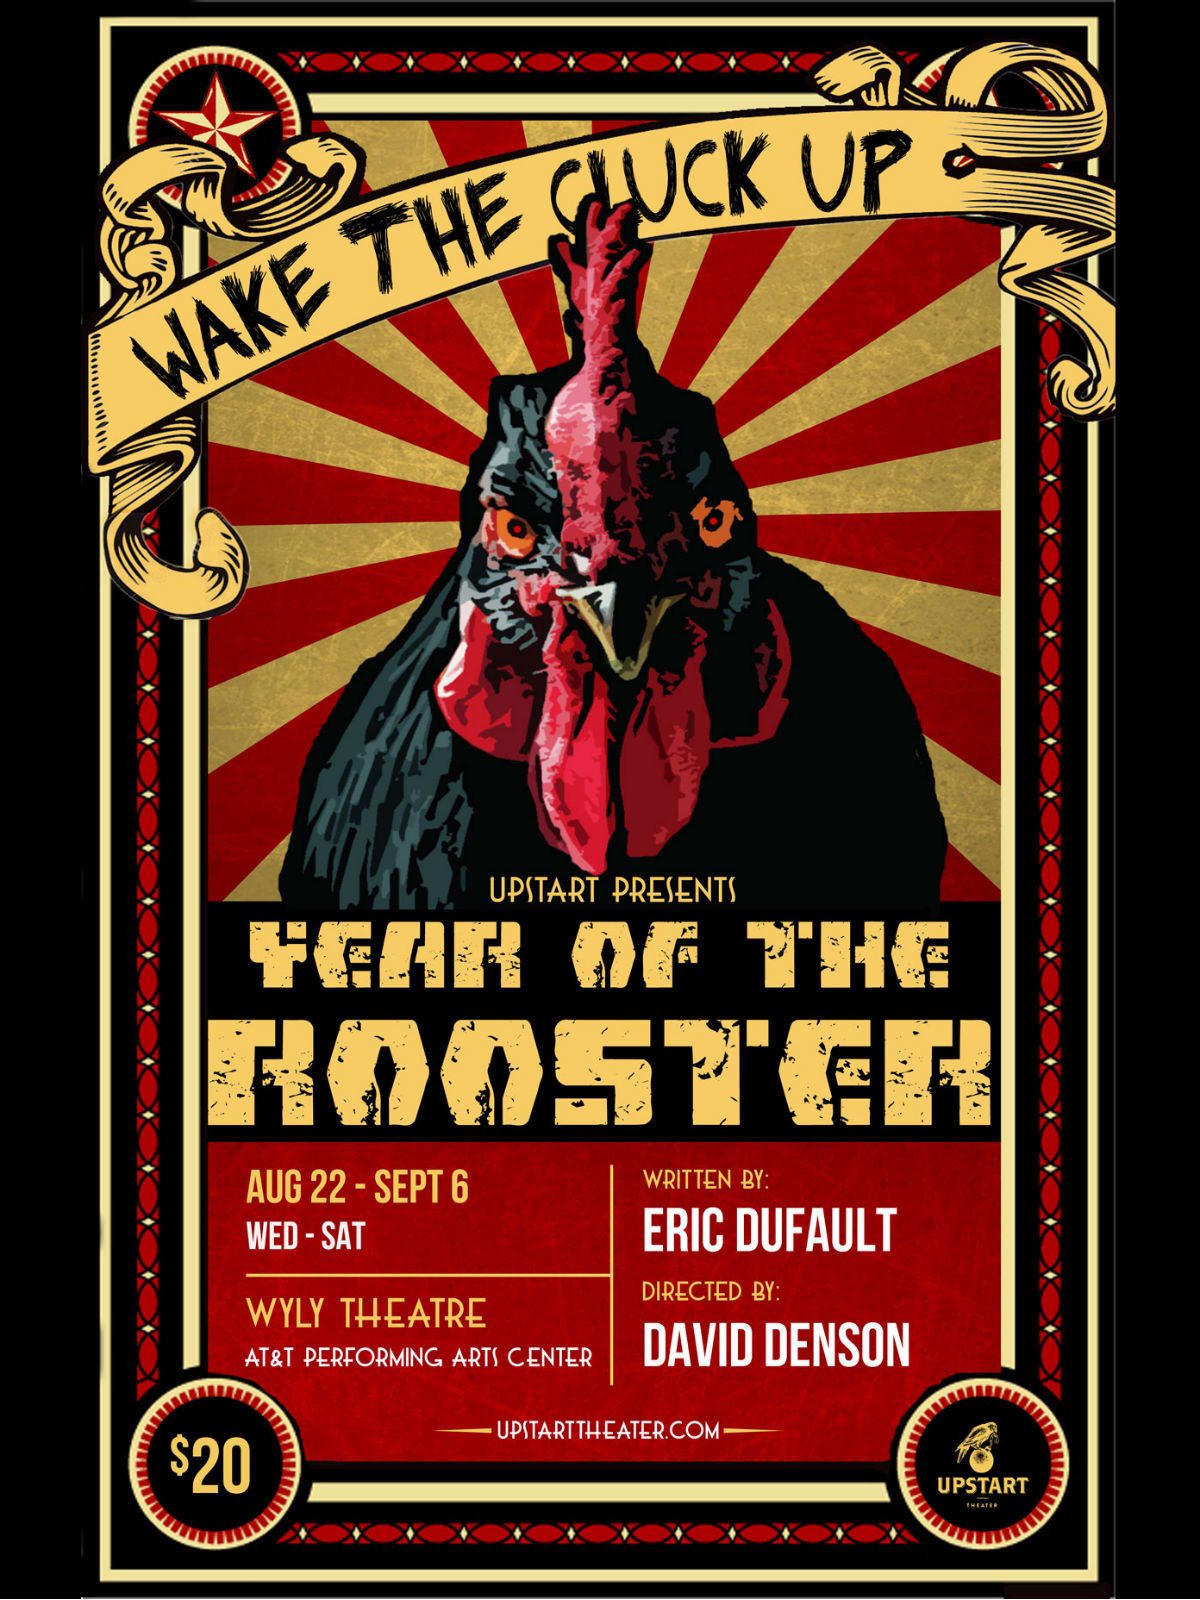 Upstart Theater presents Year of the Rooster